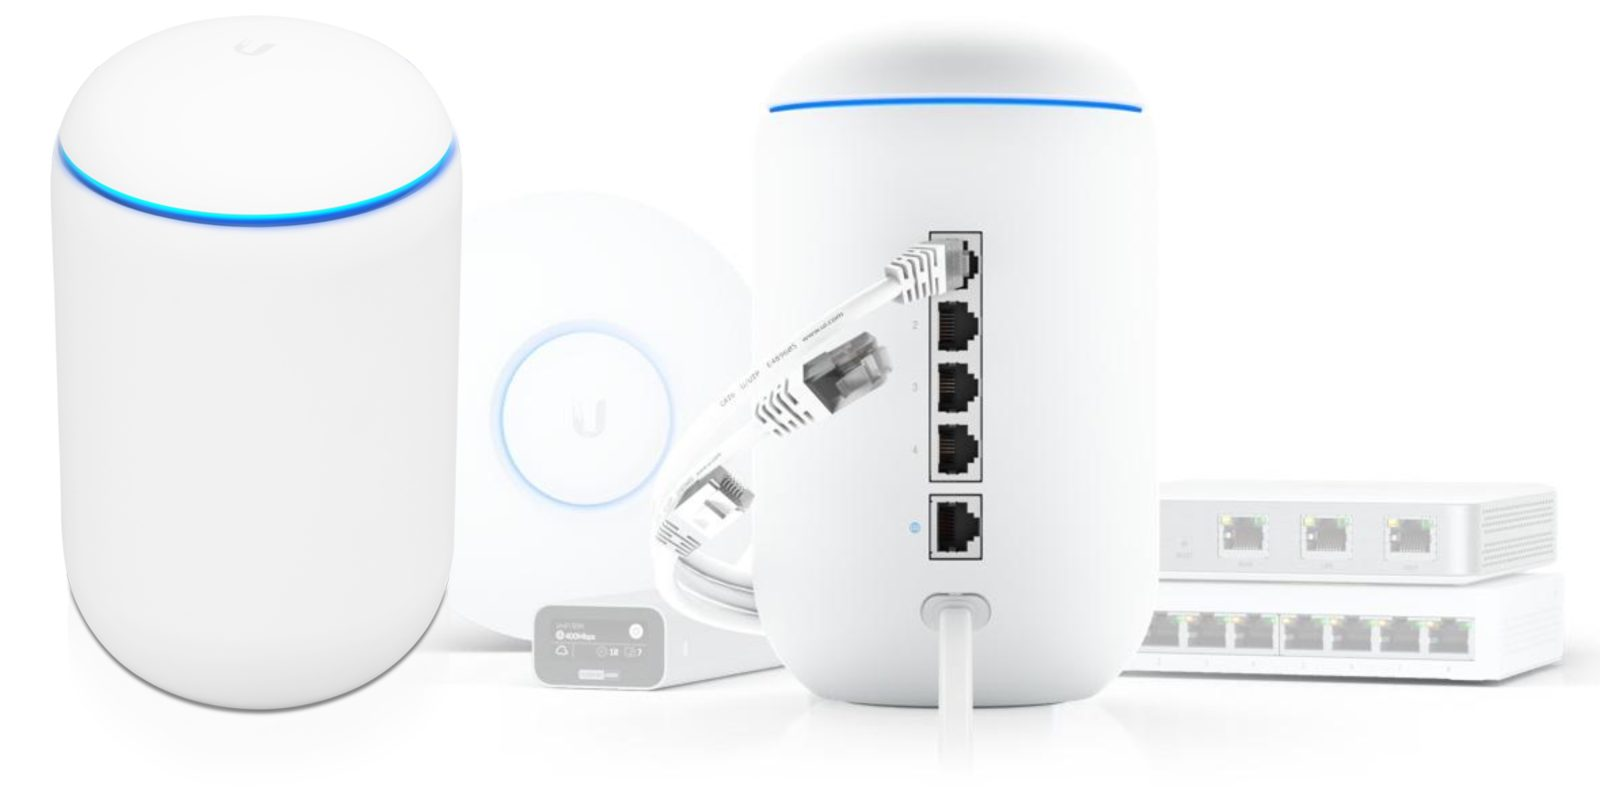 [Update: New access point too] UniFi Dream Machine blends WiFi router and Gigabit switch w/ advanced security for business or home use